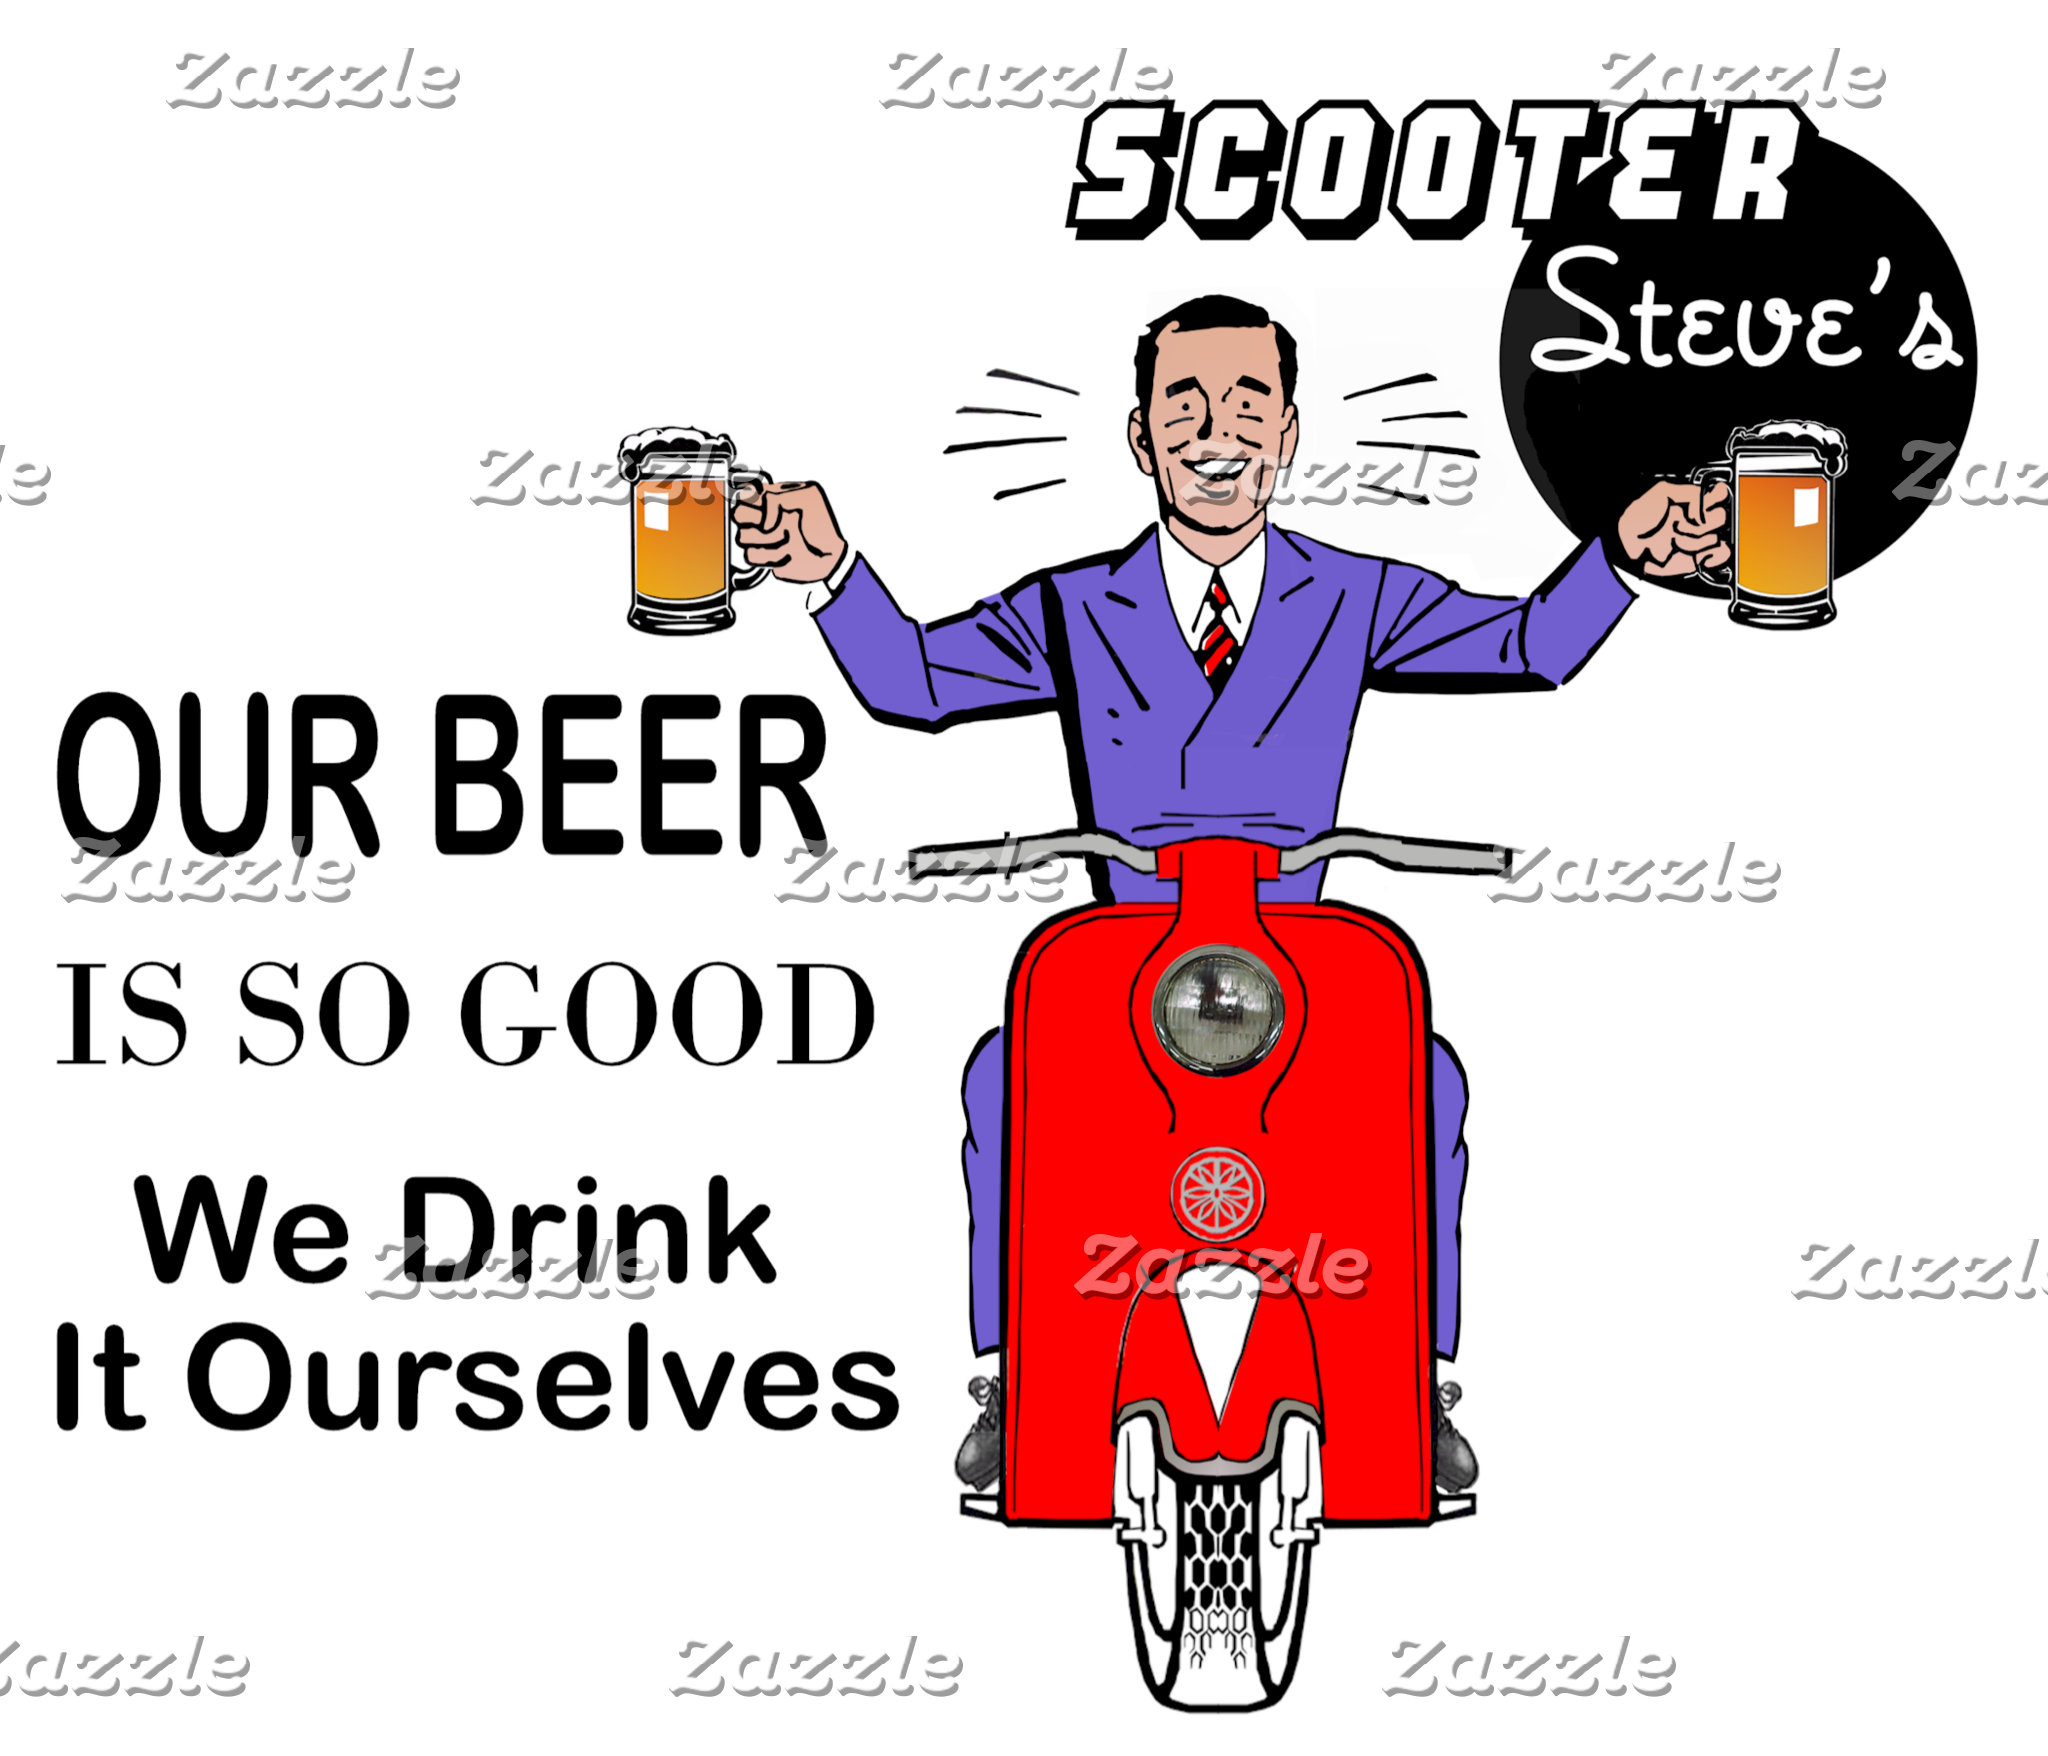 Scooter Steve's Our Beer